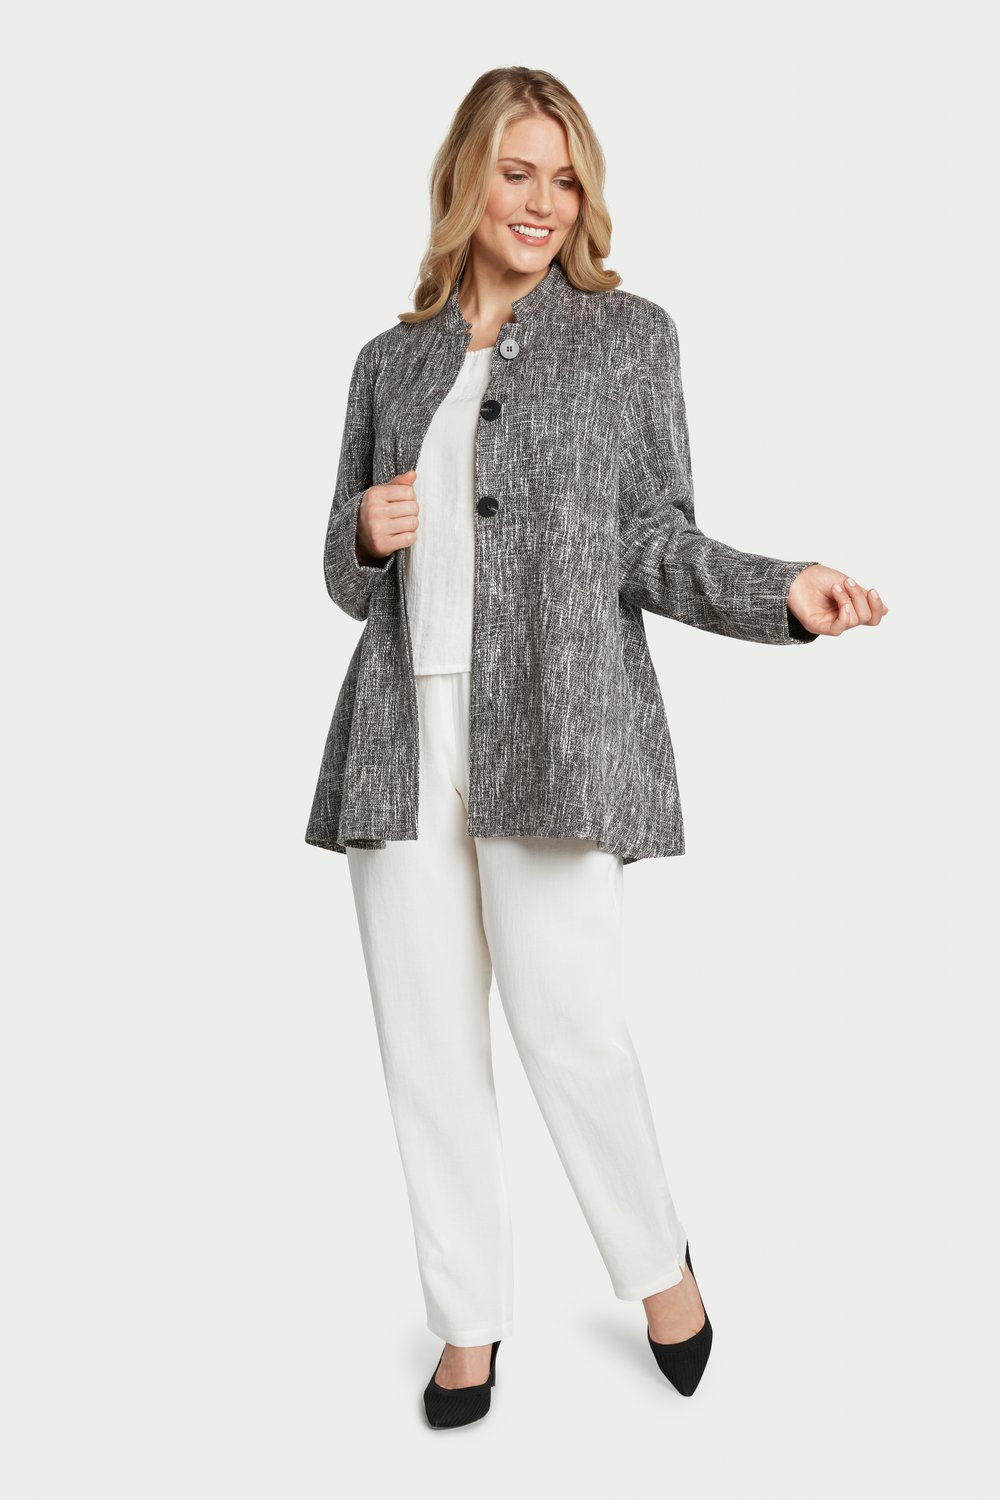 AA8010 - Sharon Jacket SG02 - Granite